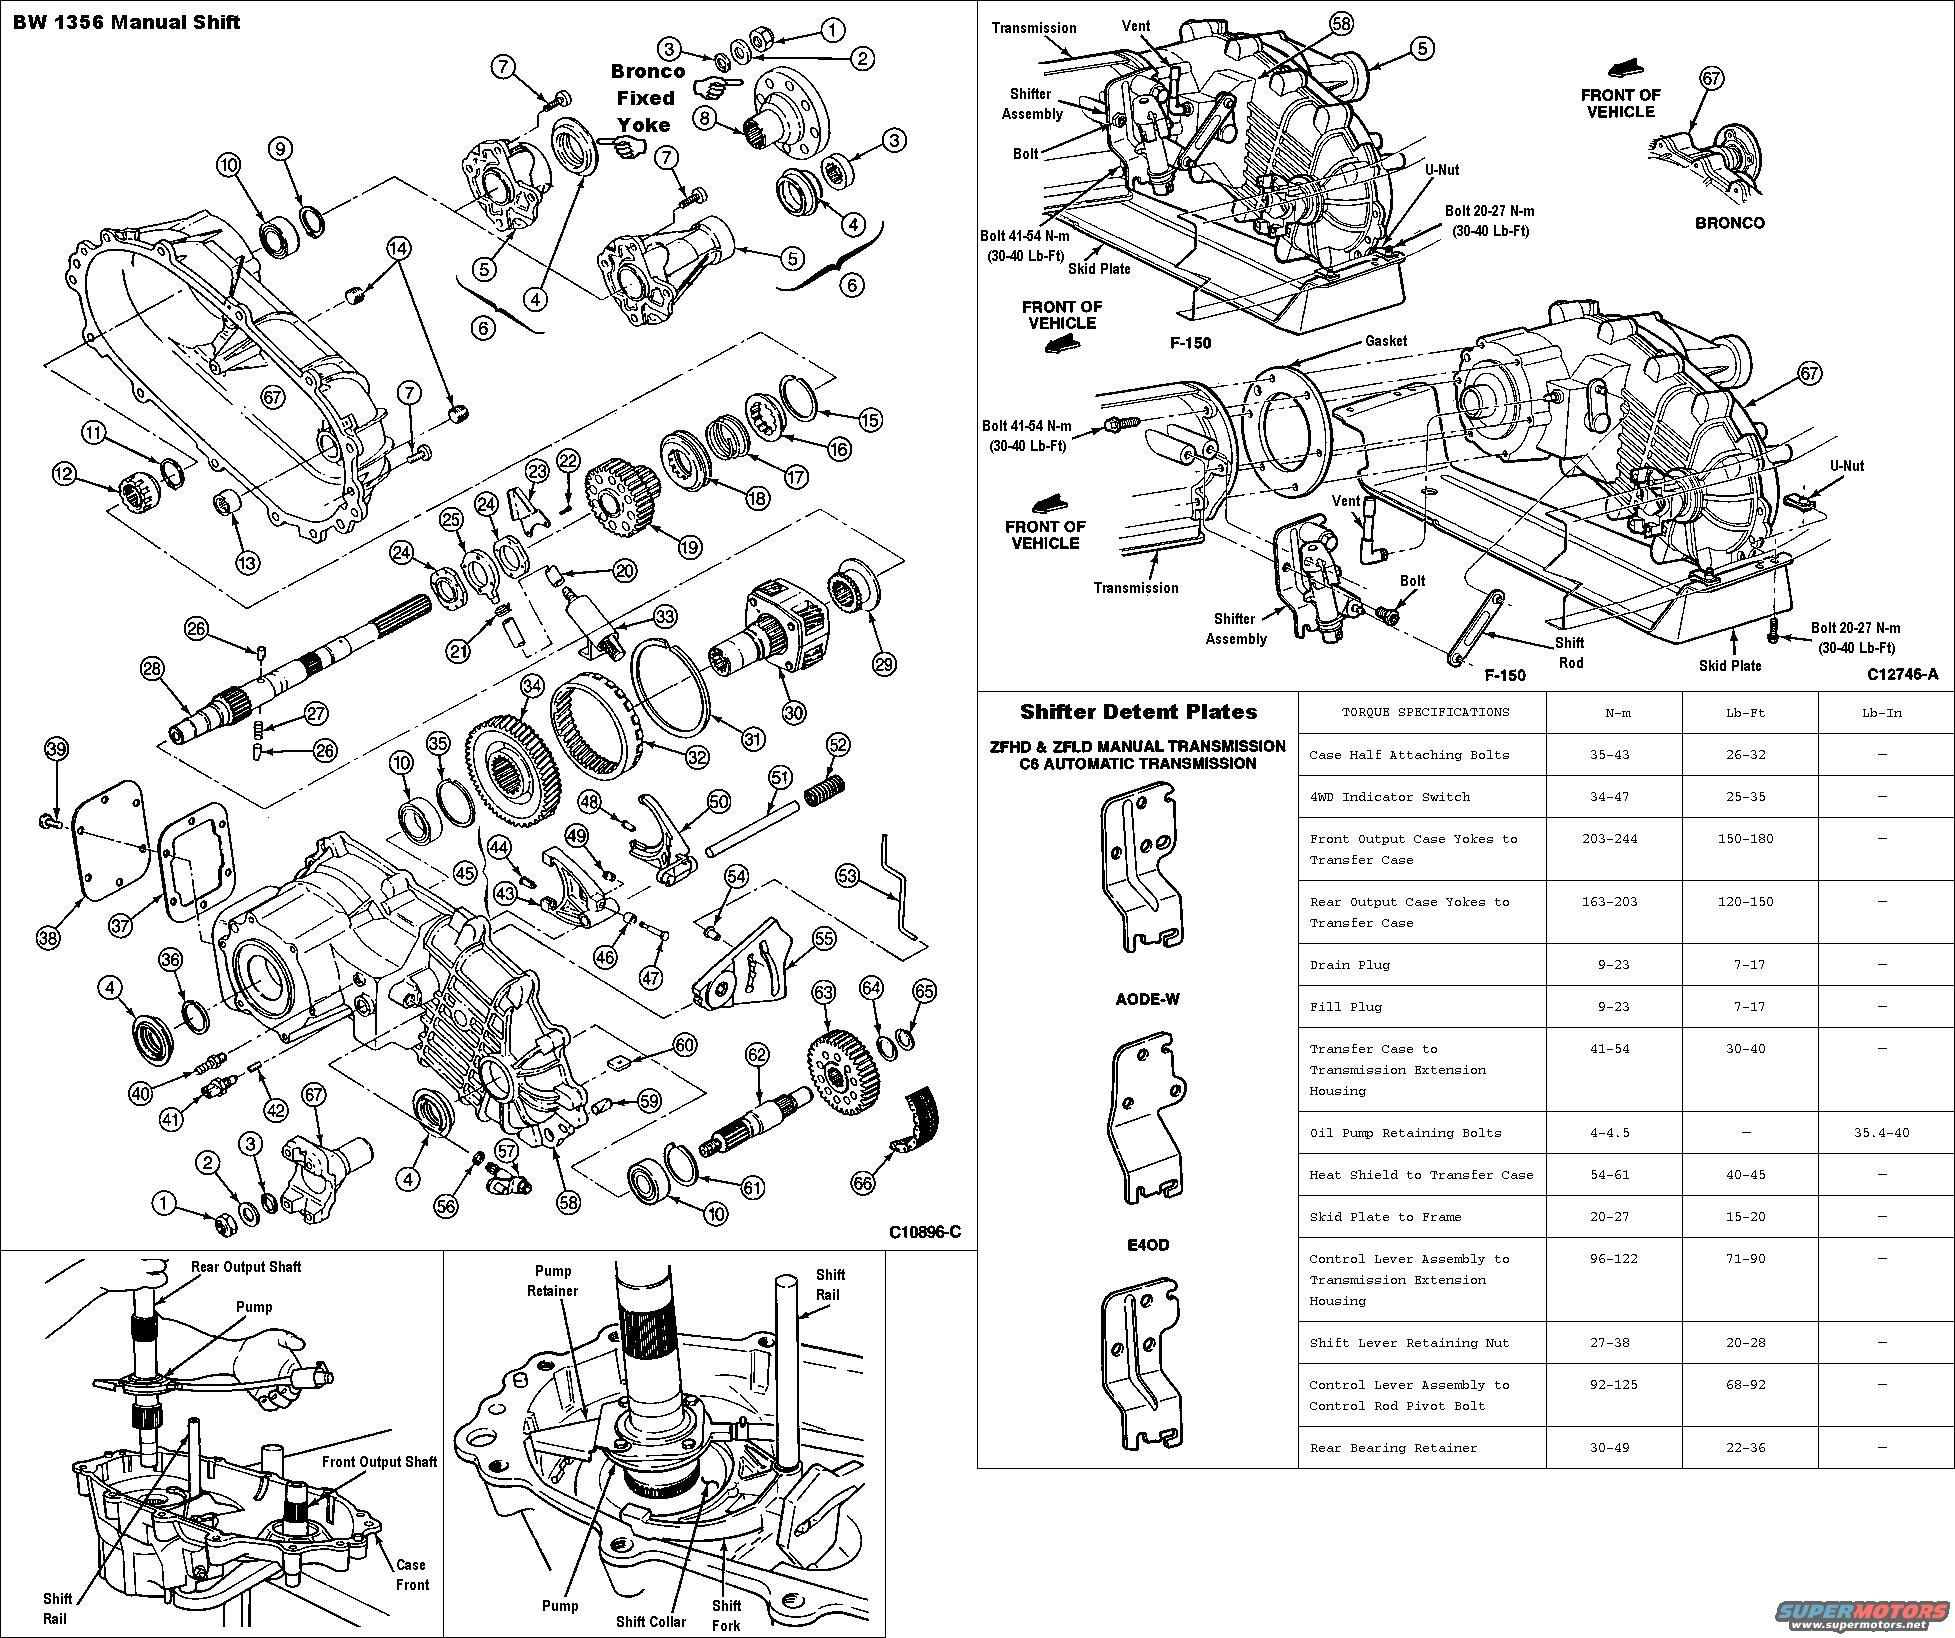 2004 Ford F150 4x4 Transmission Diagram Best Secret Wiring 1994 F 150 Engine 94 Transfer Case Get Free Image Problems